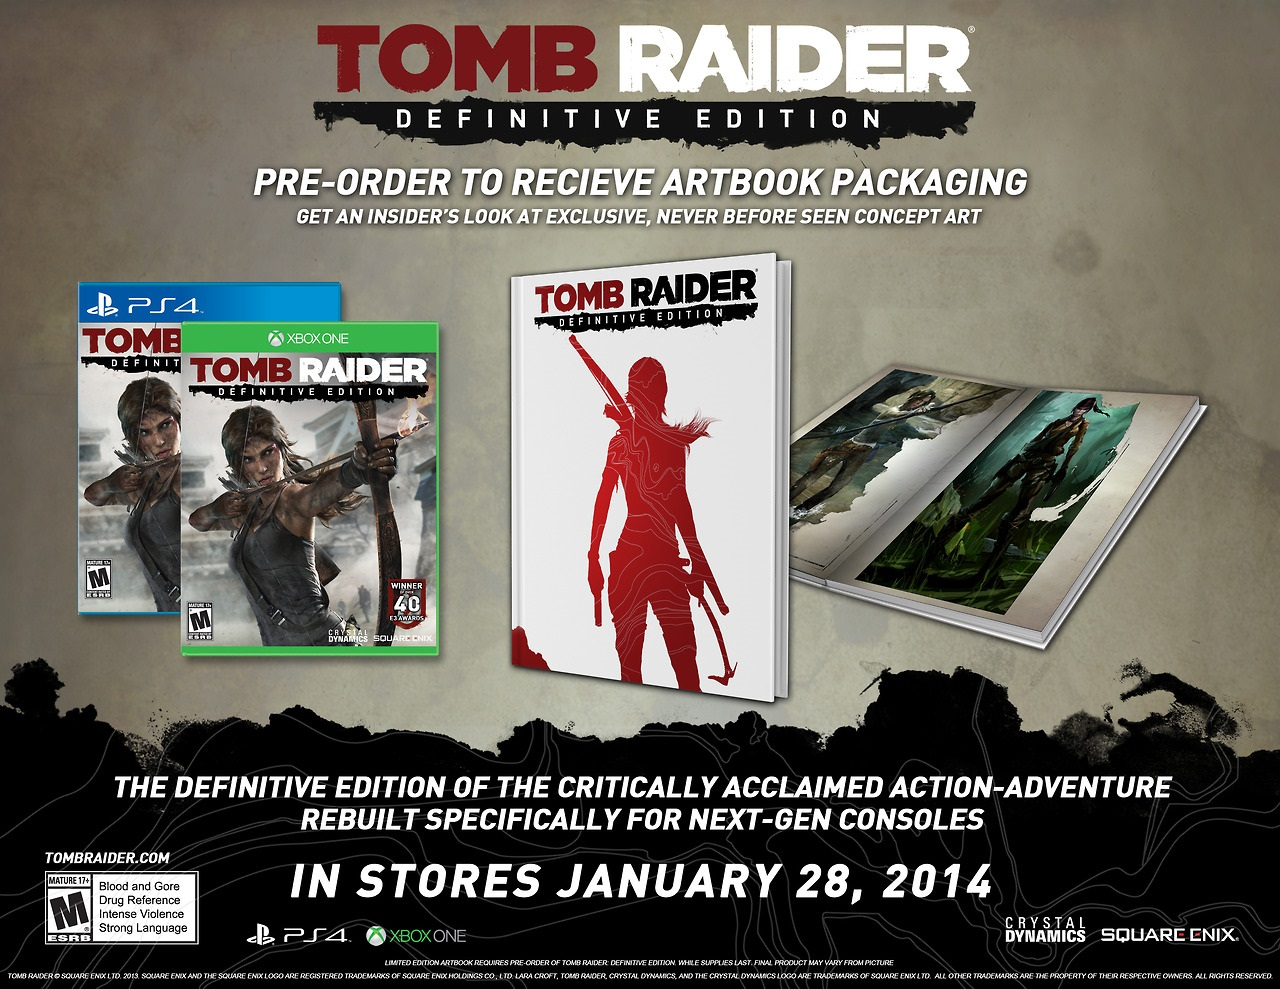 The Tomb Raider: Definitive Edition will be available from January